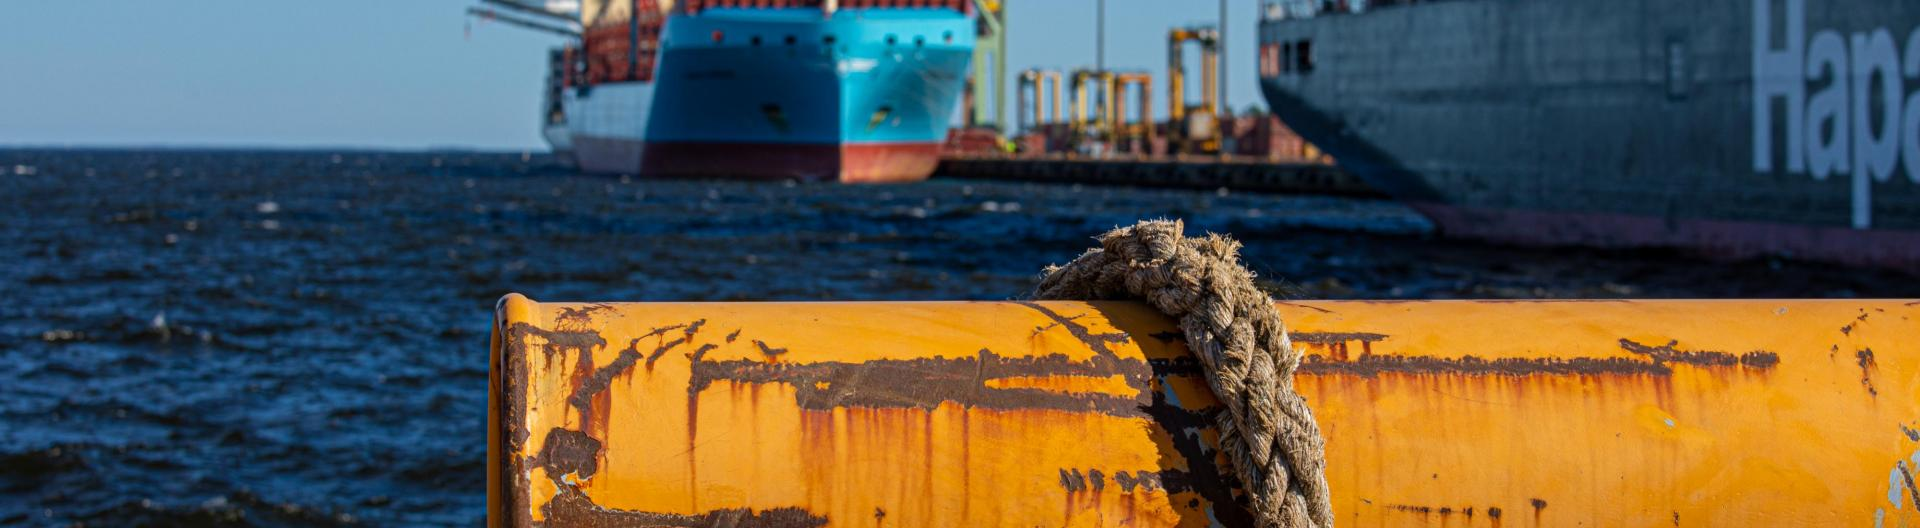 Port of HaminaKotka Services Main Picture